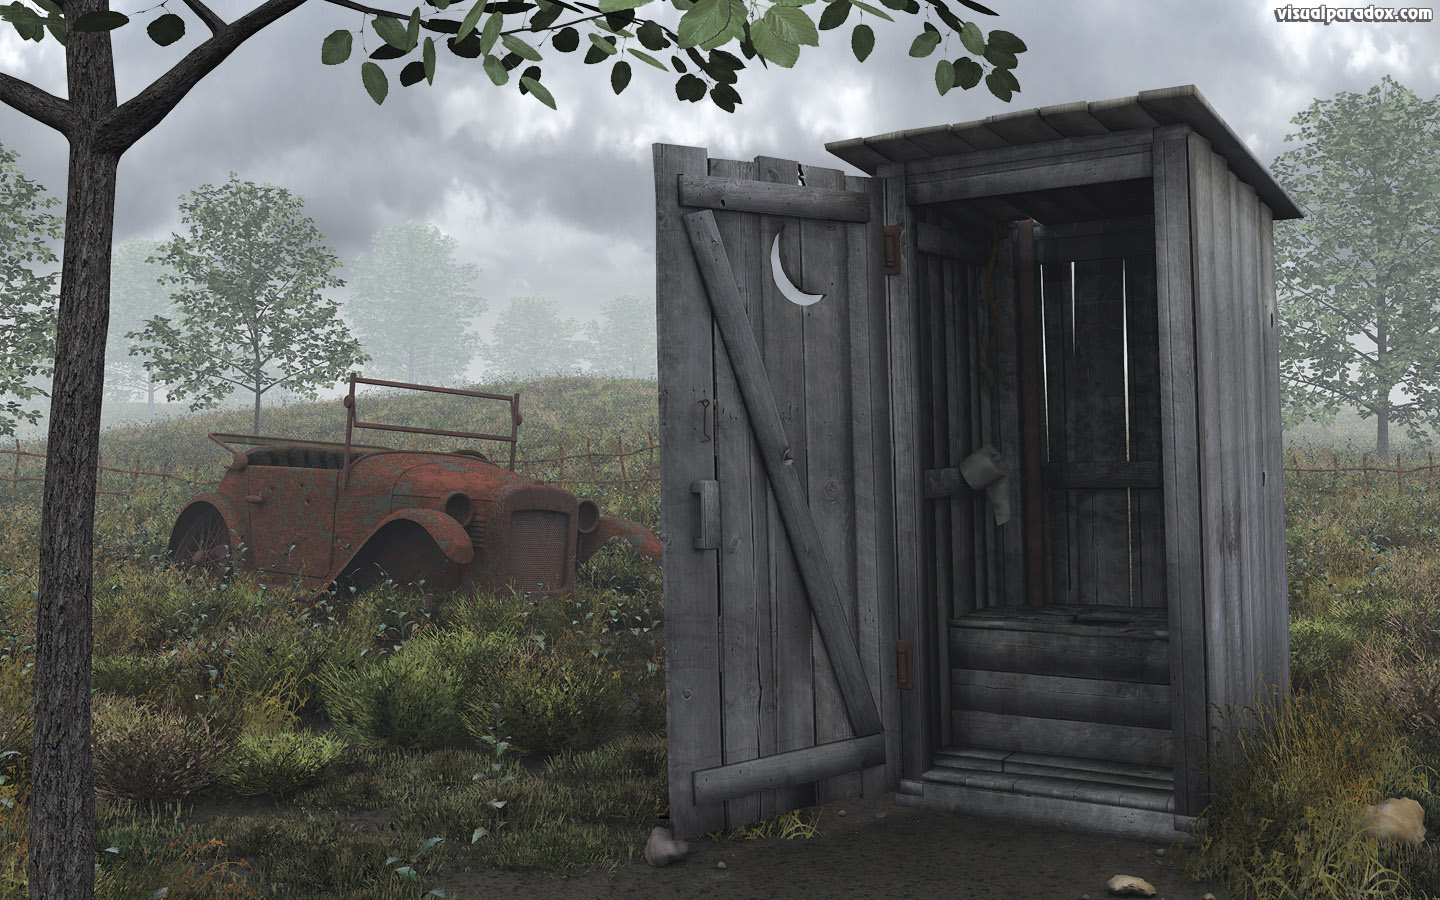 free 3d wallpaper 39 outhouse 39 1440x900 wide screen